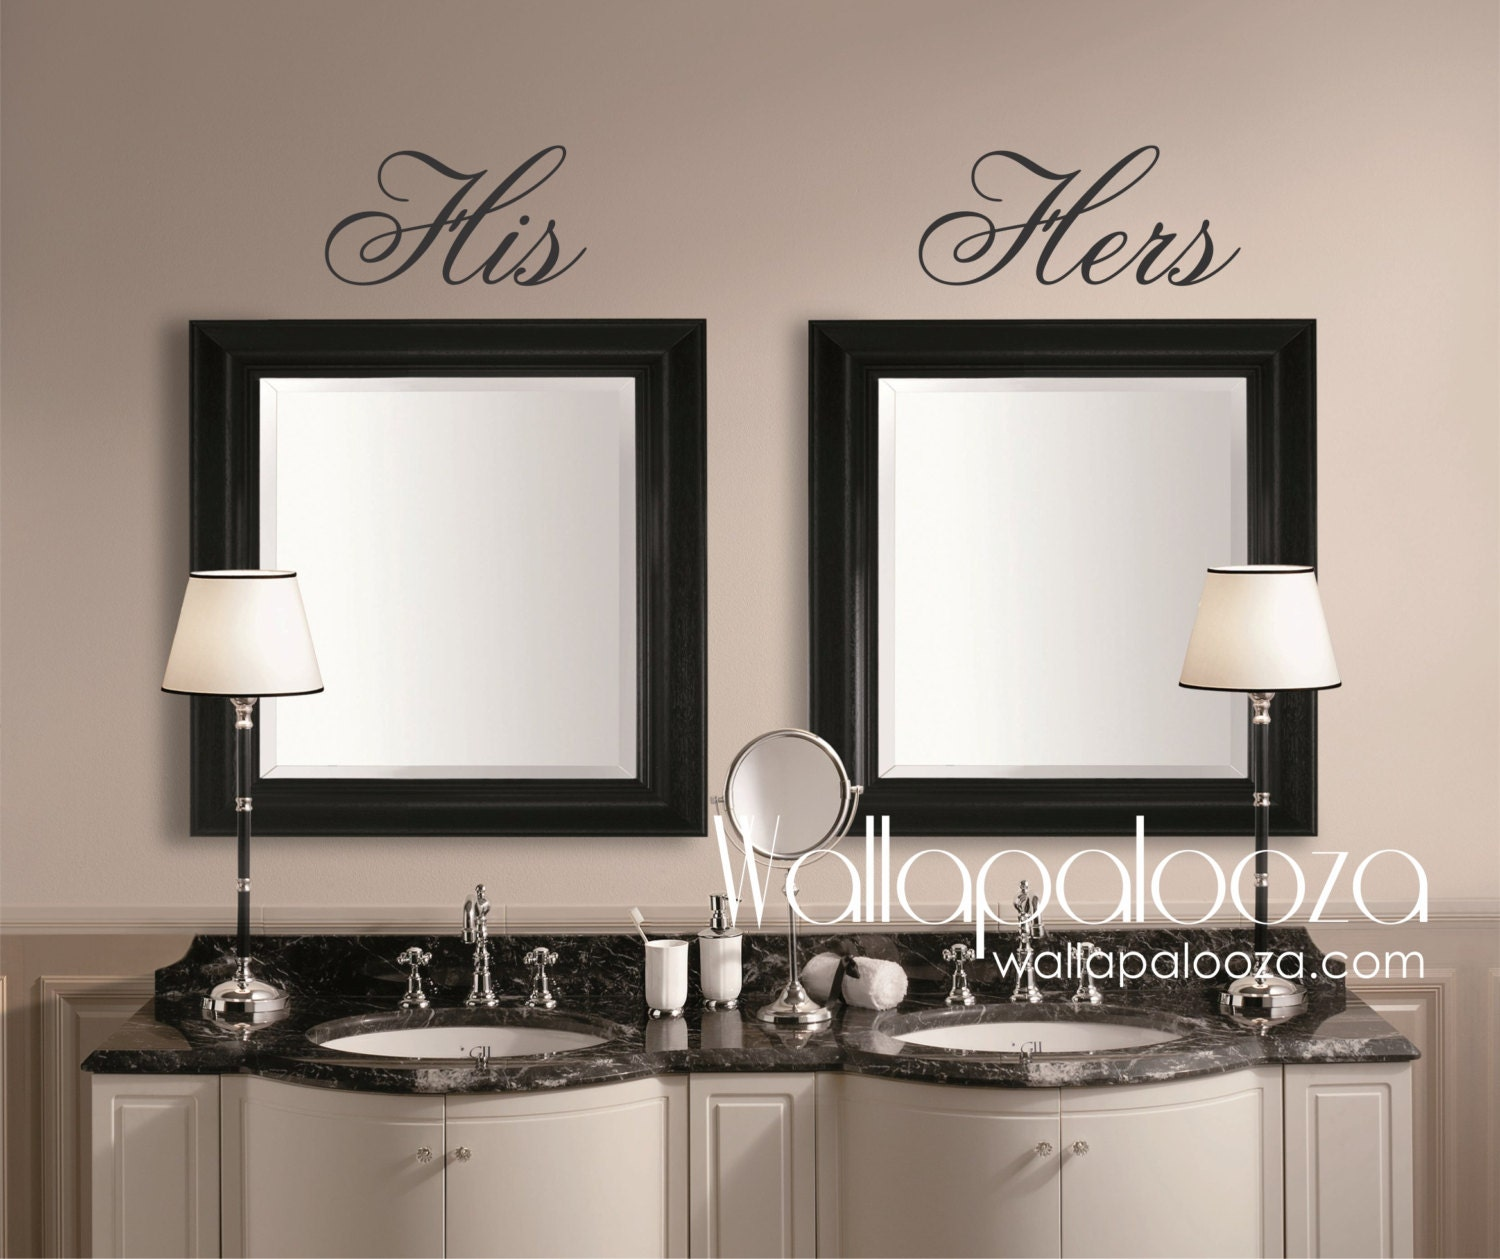 Bathroom Wall Decor His And Hers Wall Decal Mirror Decal - Wall decals mirror